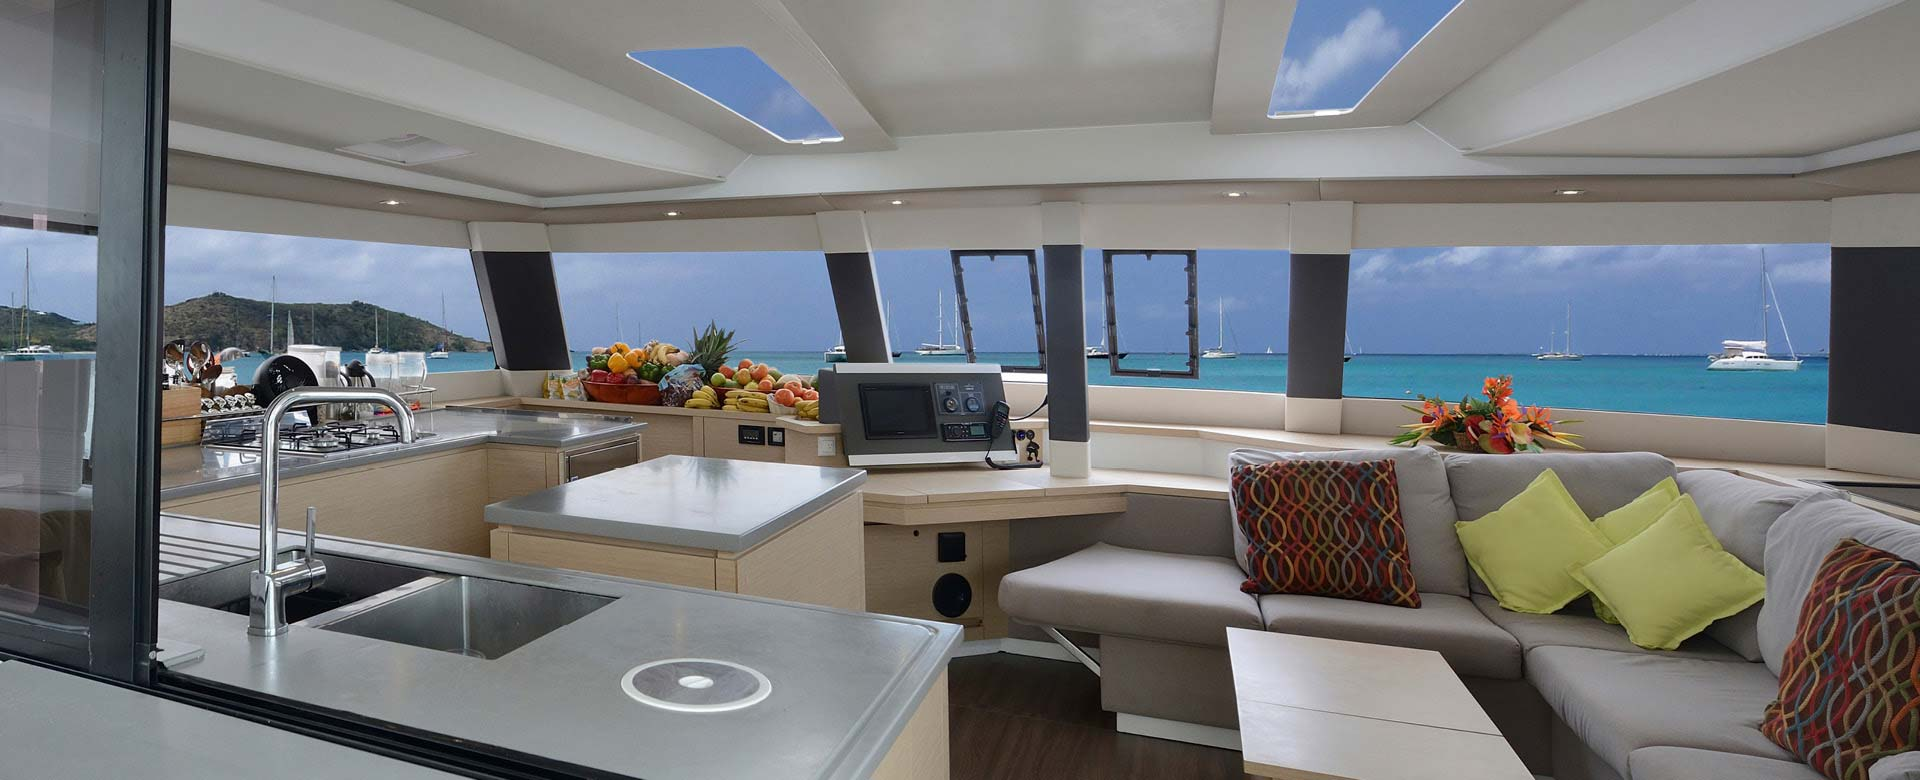 inside a luxury yacht